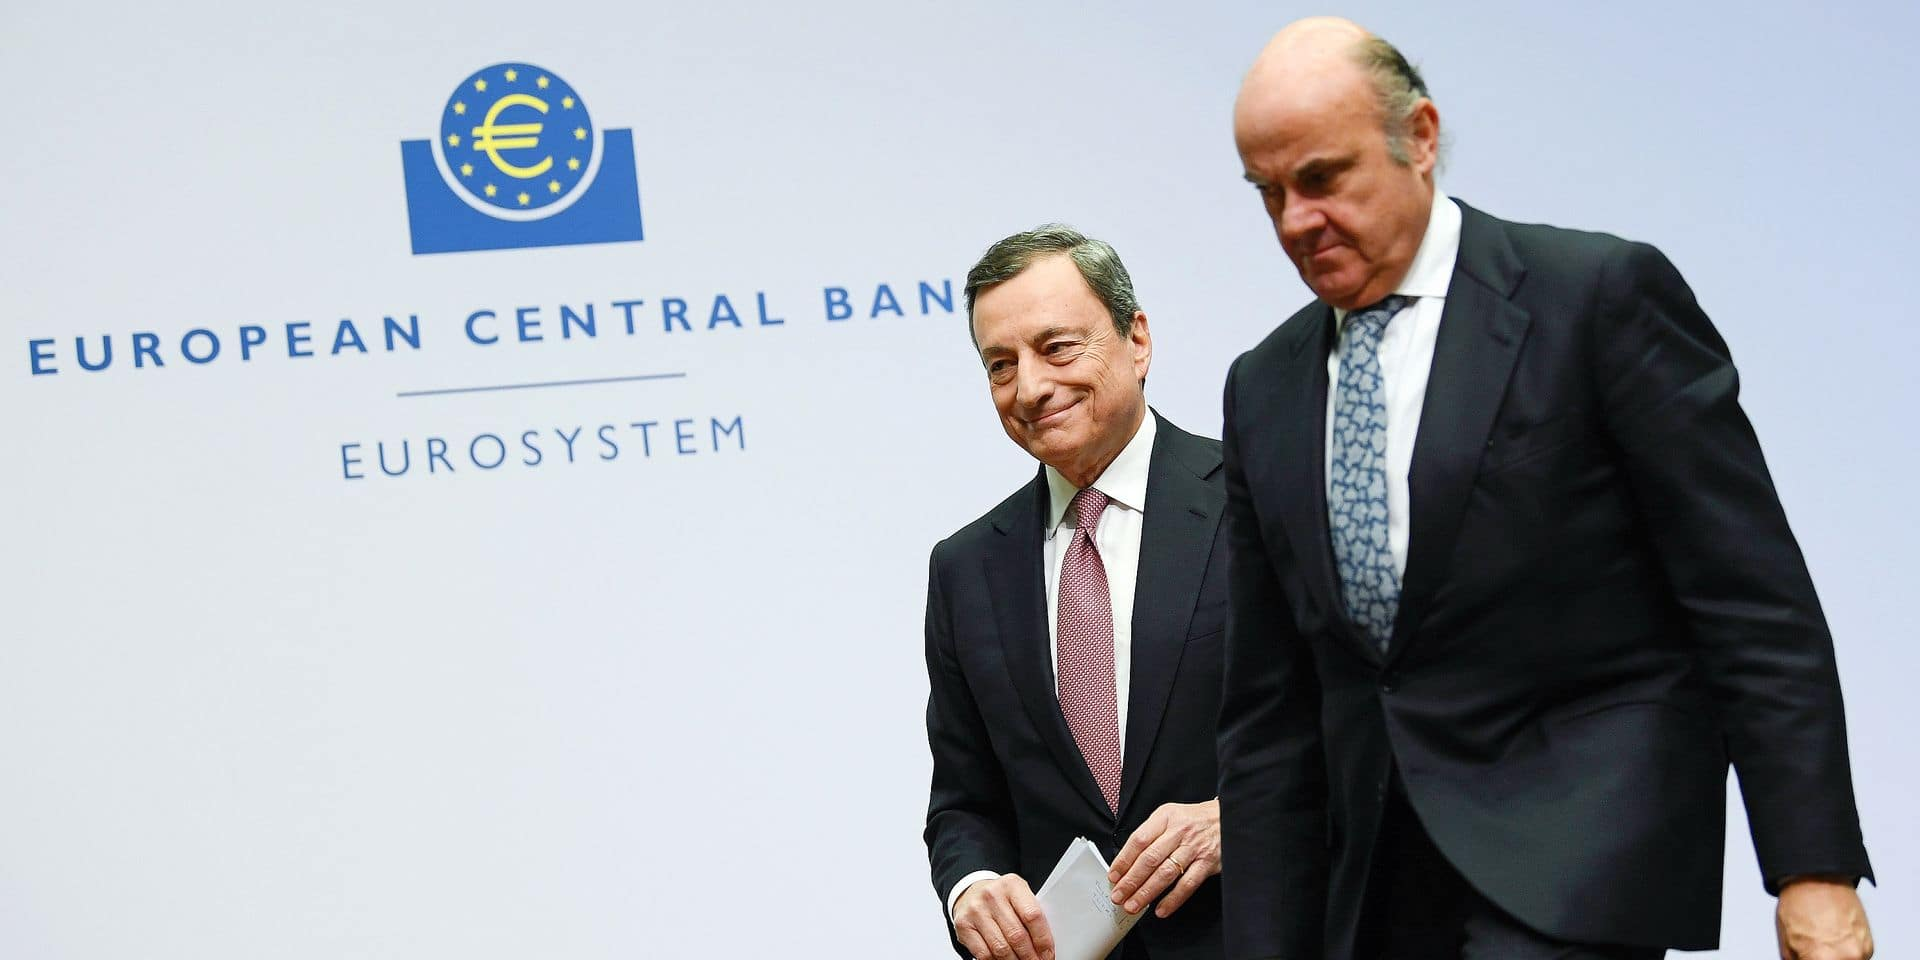 24 January 2019, Hessen, Frankfurt/Main: Mario Draghi (l), President of the European Central Bank (ECB), and Vice-President Luis de Guindos leave the panel following the press conference at the ECB's headquarters. At their regular meeting, Europe's top currency watchdogs left the key interest rate in the euro zone at a record low of zero percent. Photo: Arne Dedert/dpa Reporters / DPA